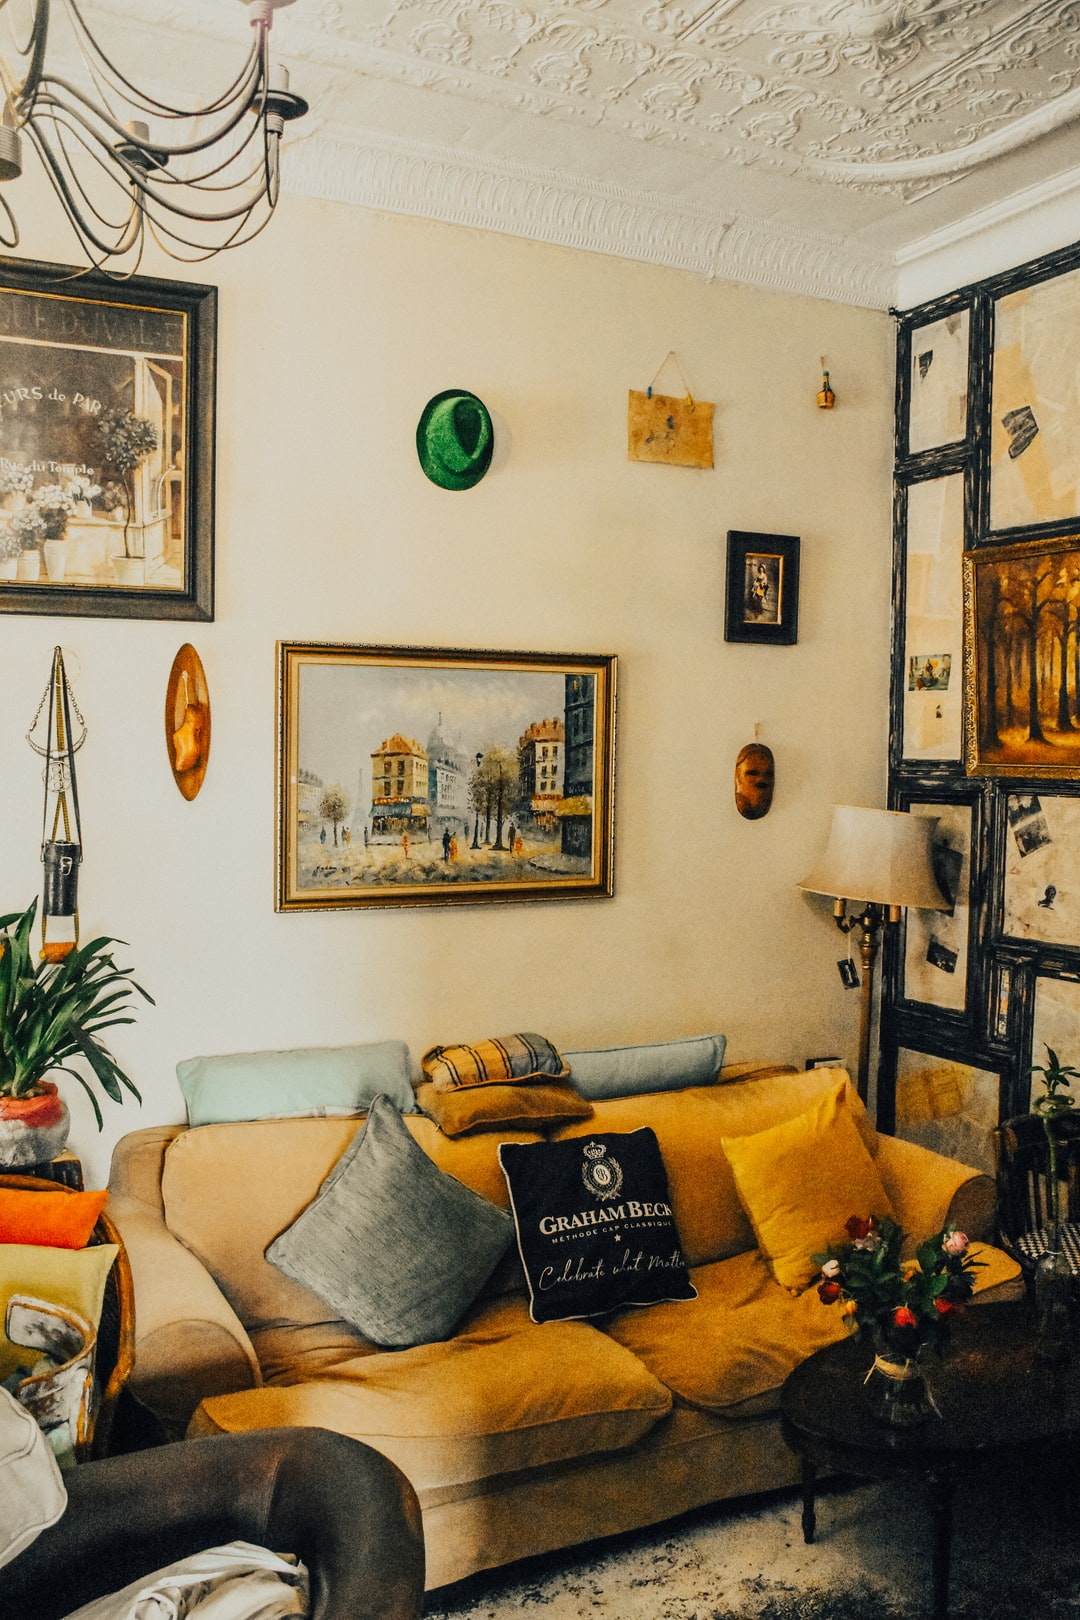 A Living Room Pictures   Download Free Images on Unsplash